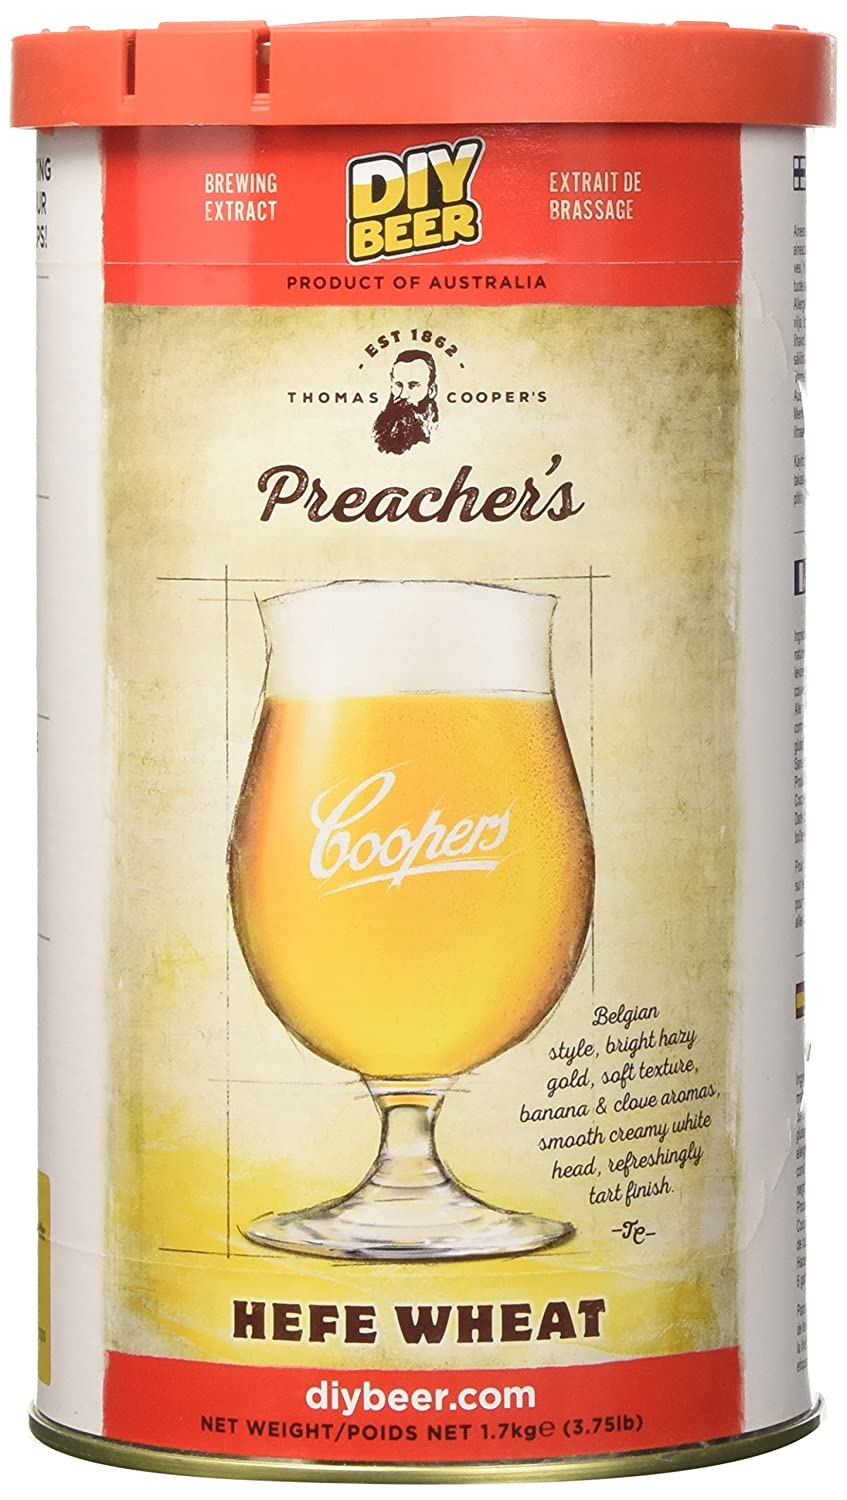 Coopers DIY Beer Thomas Coopers Preacher's Hefe Wheat Homebrewing Craft Beer Brewing Extract 837